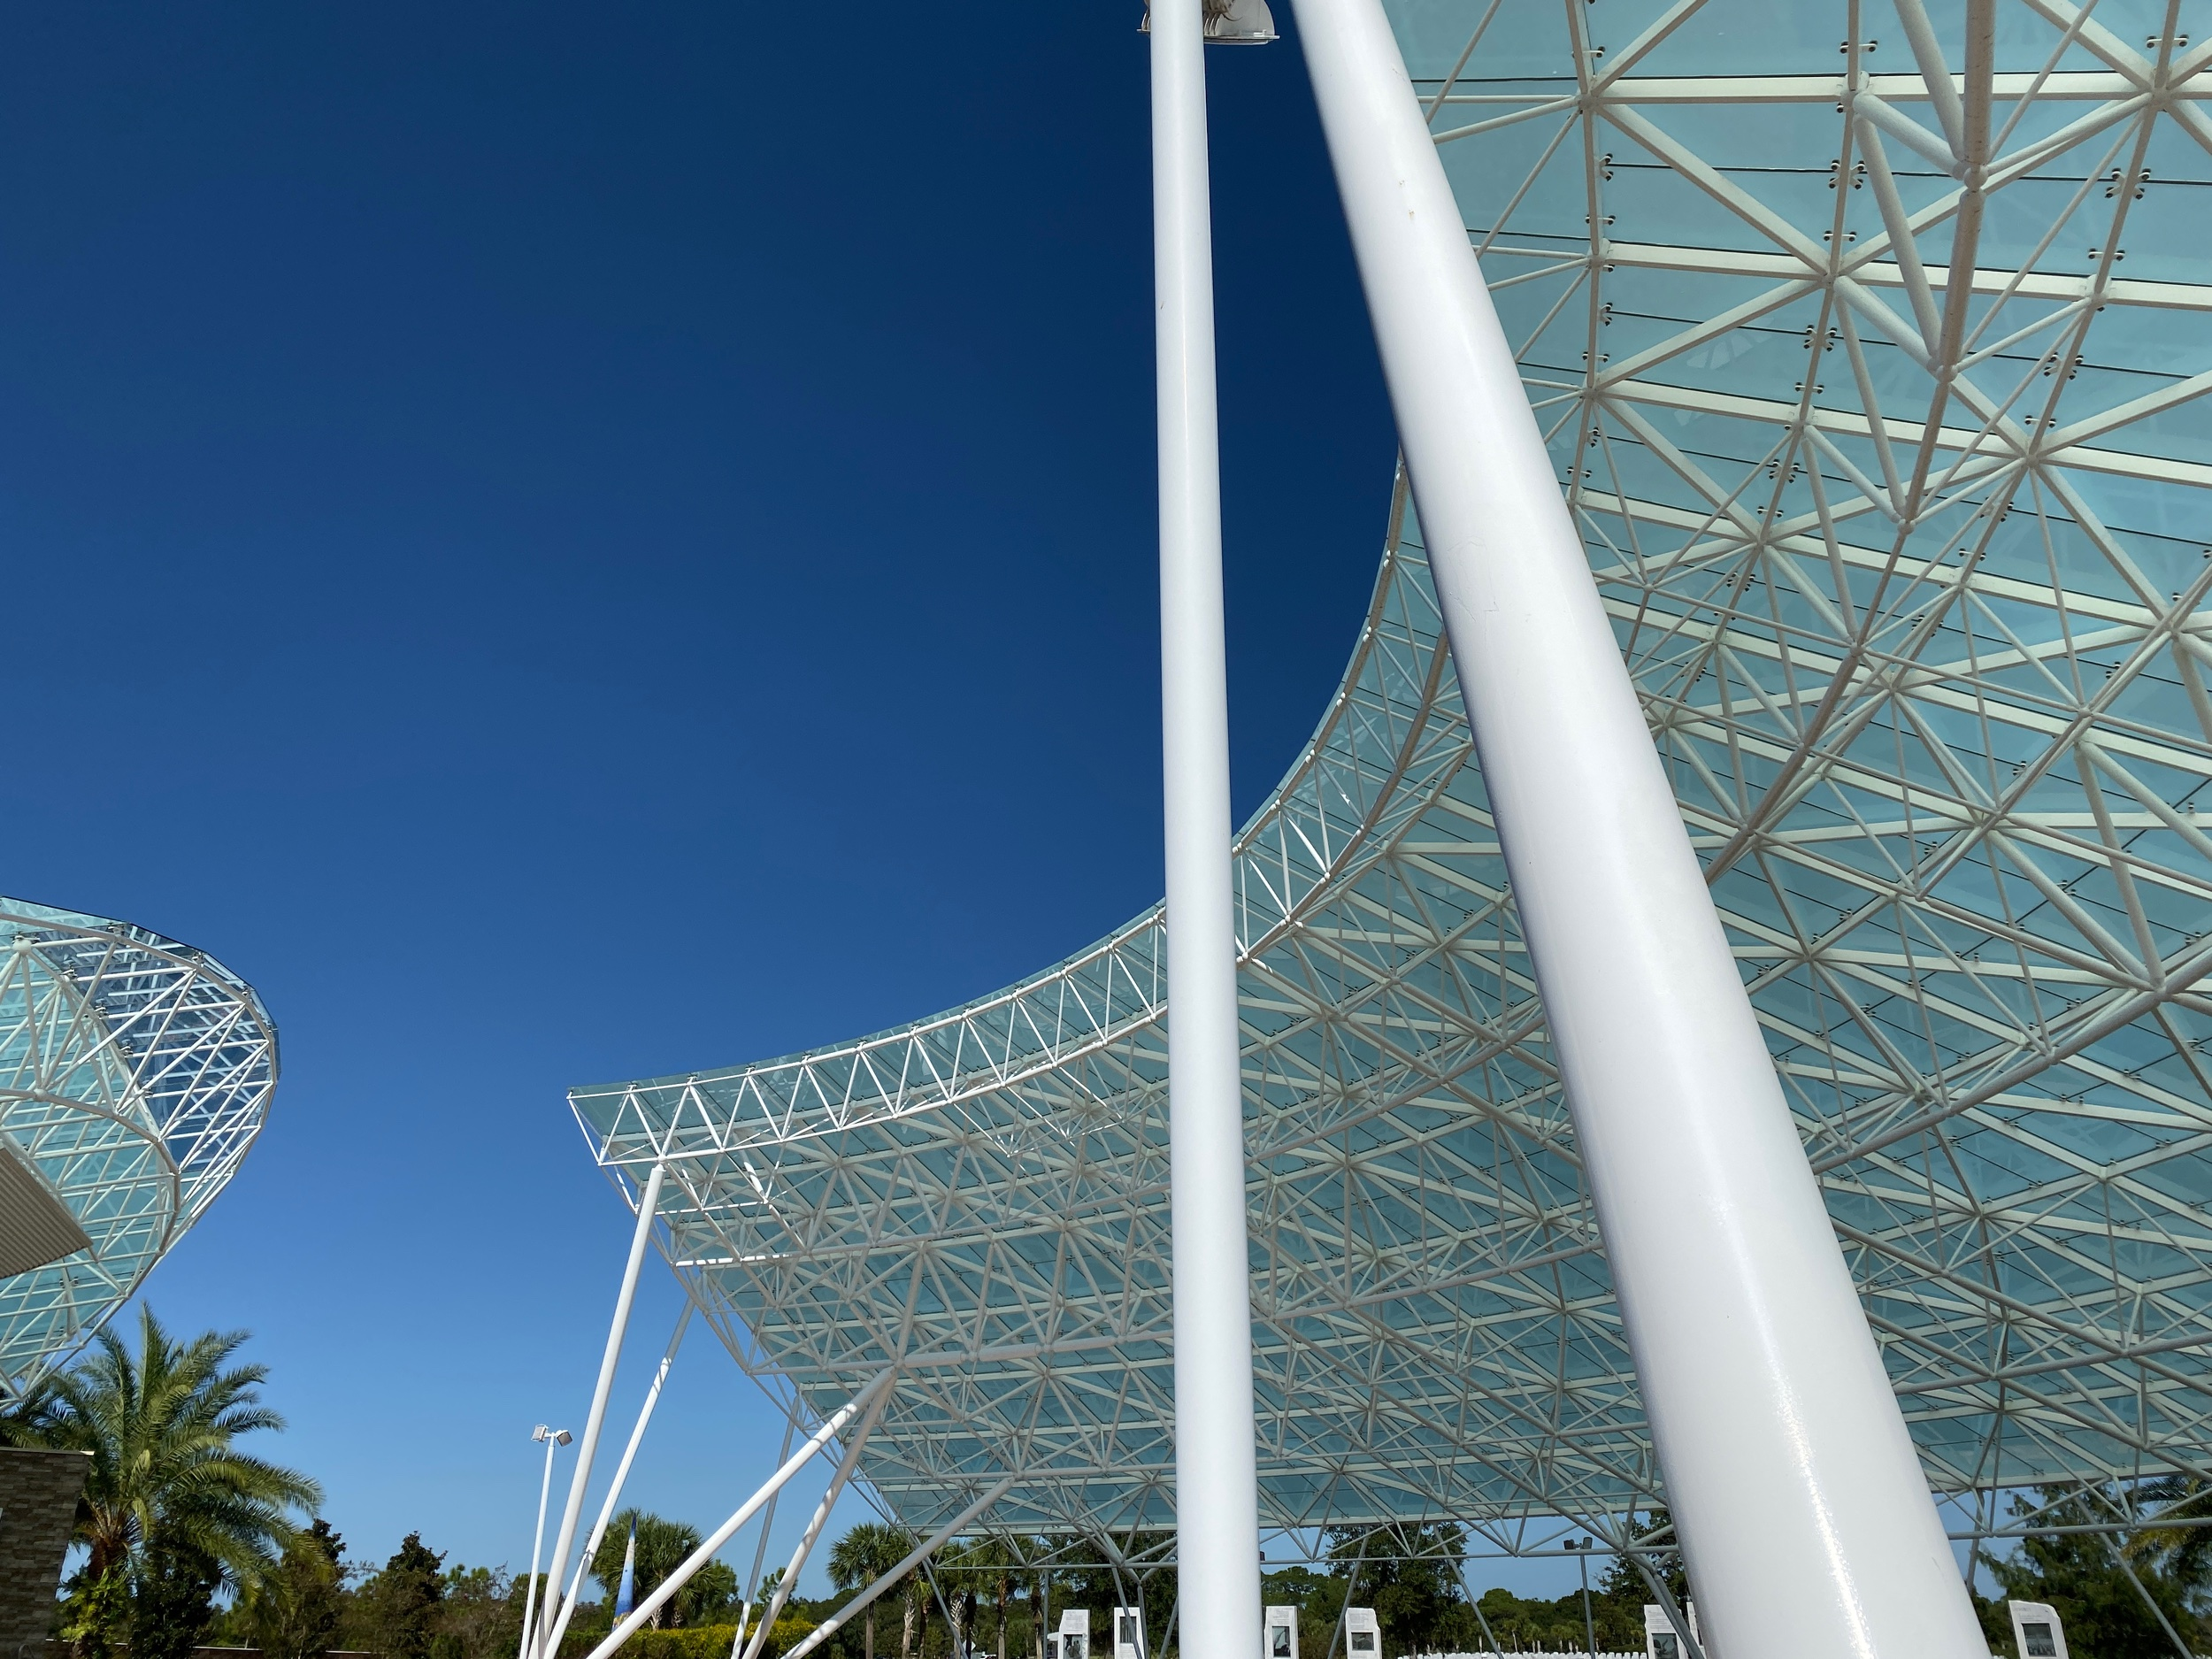 20,800 sq foot glass covering